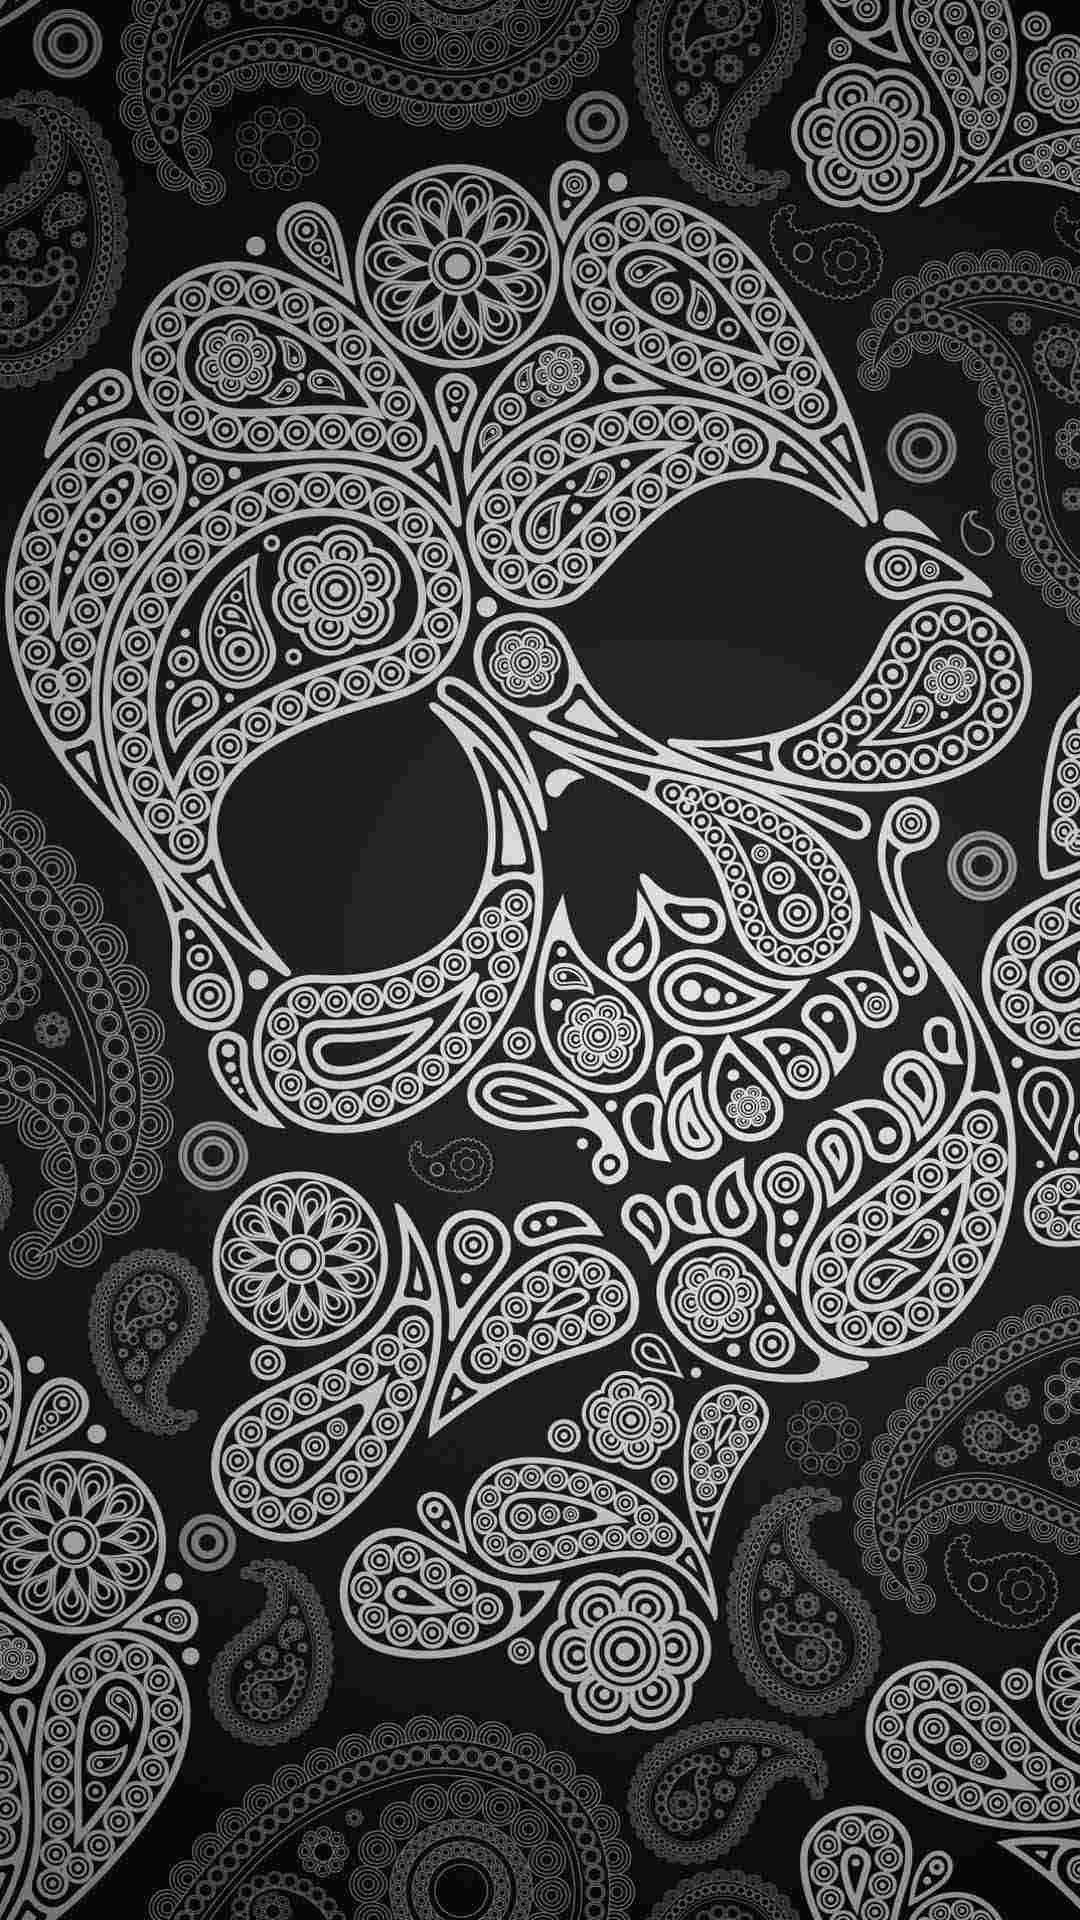 Sugar Skull Wallpaper for iPhone